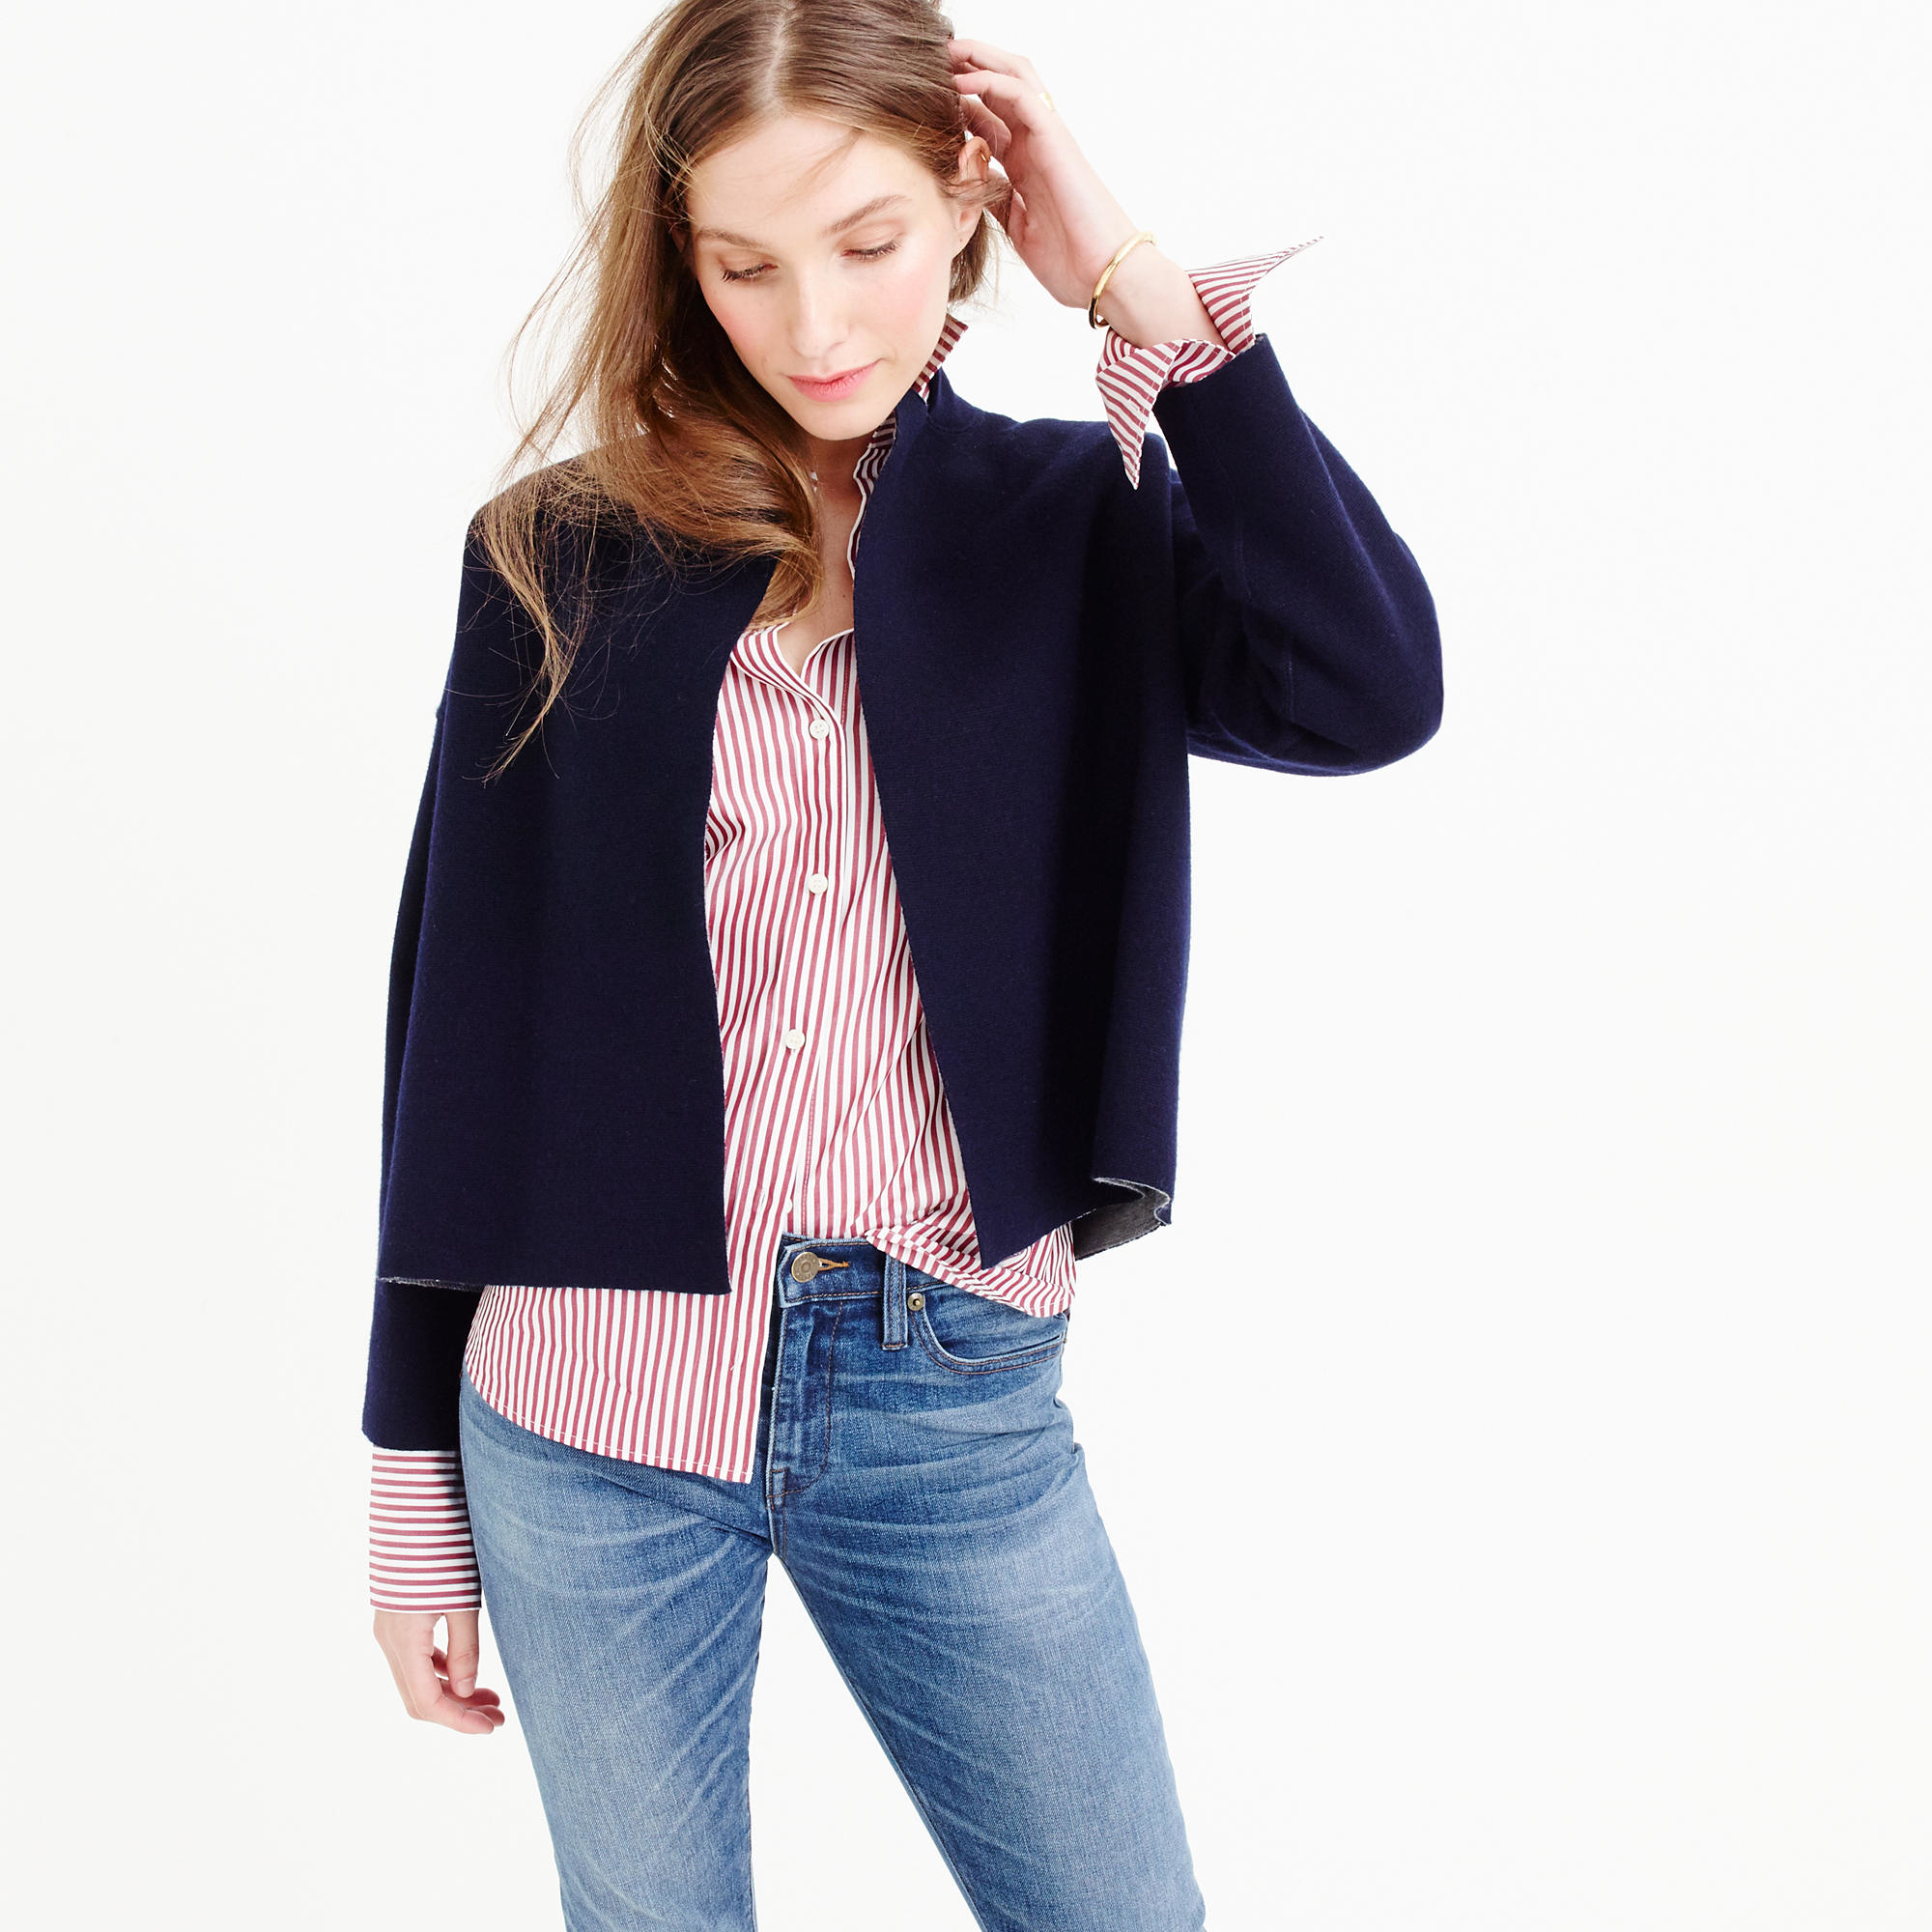 Jcrew Reversible Sweater-Jacket In Blue - Lyst-7557